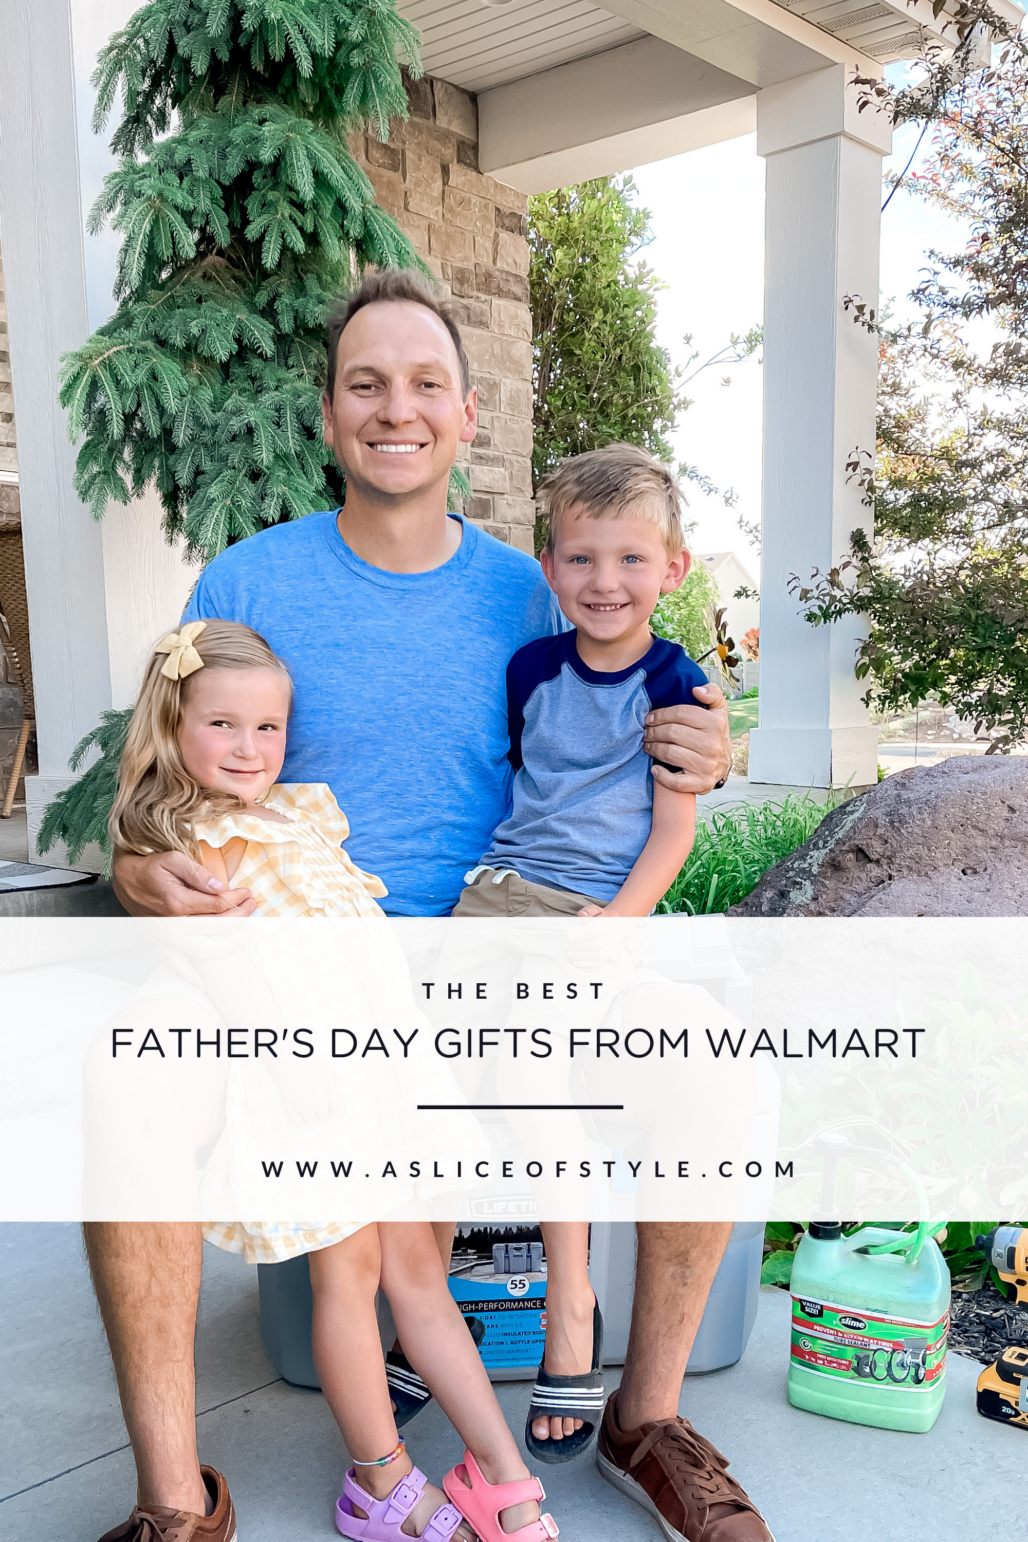 Best Father's Day Gifts From Walmart